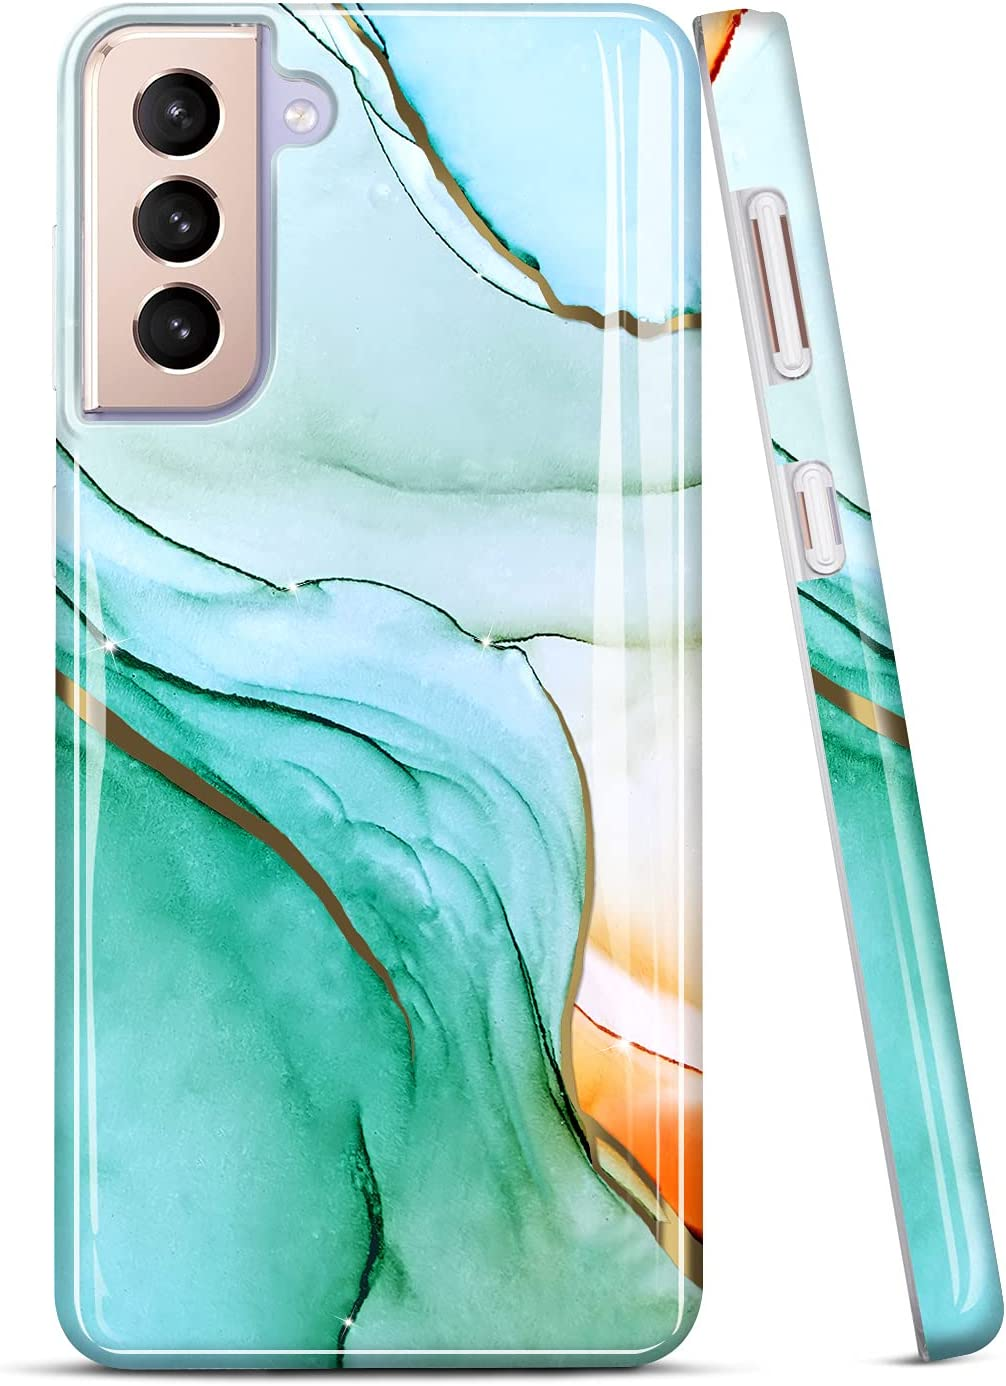 JIAXIUFEN Galaxy S21 Case Gold Electroplated Glitter Marble Slim Shockproof TPU Soft Rubber Silicone Cover Phone Case for Samsung Galaxy S21 5G 6.2 inch 2021 Green Gold